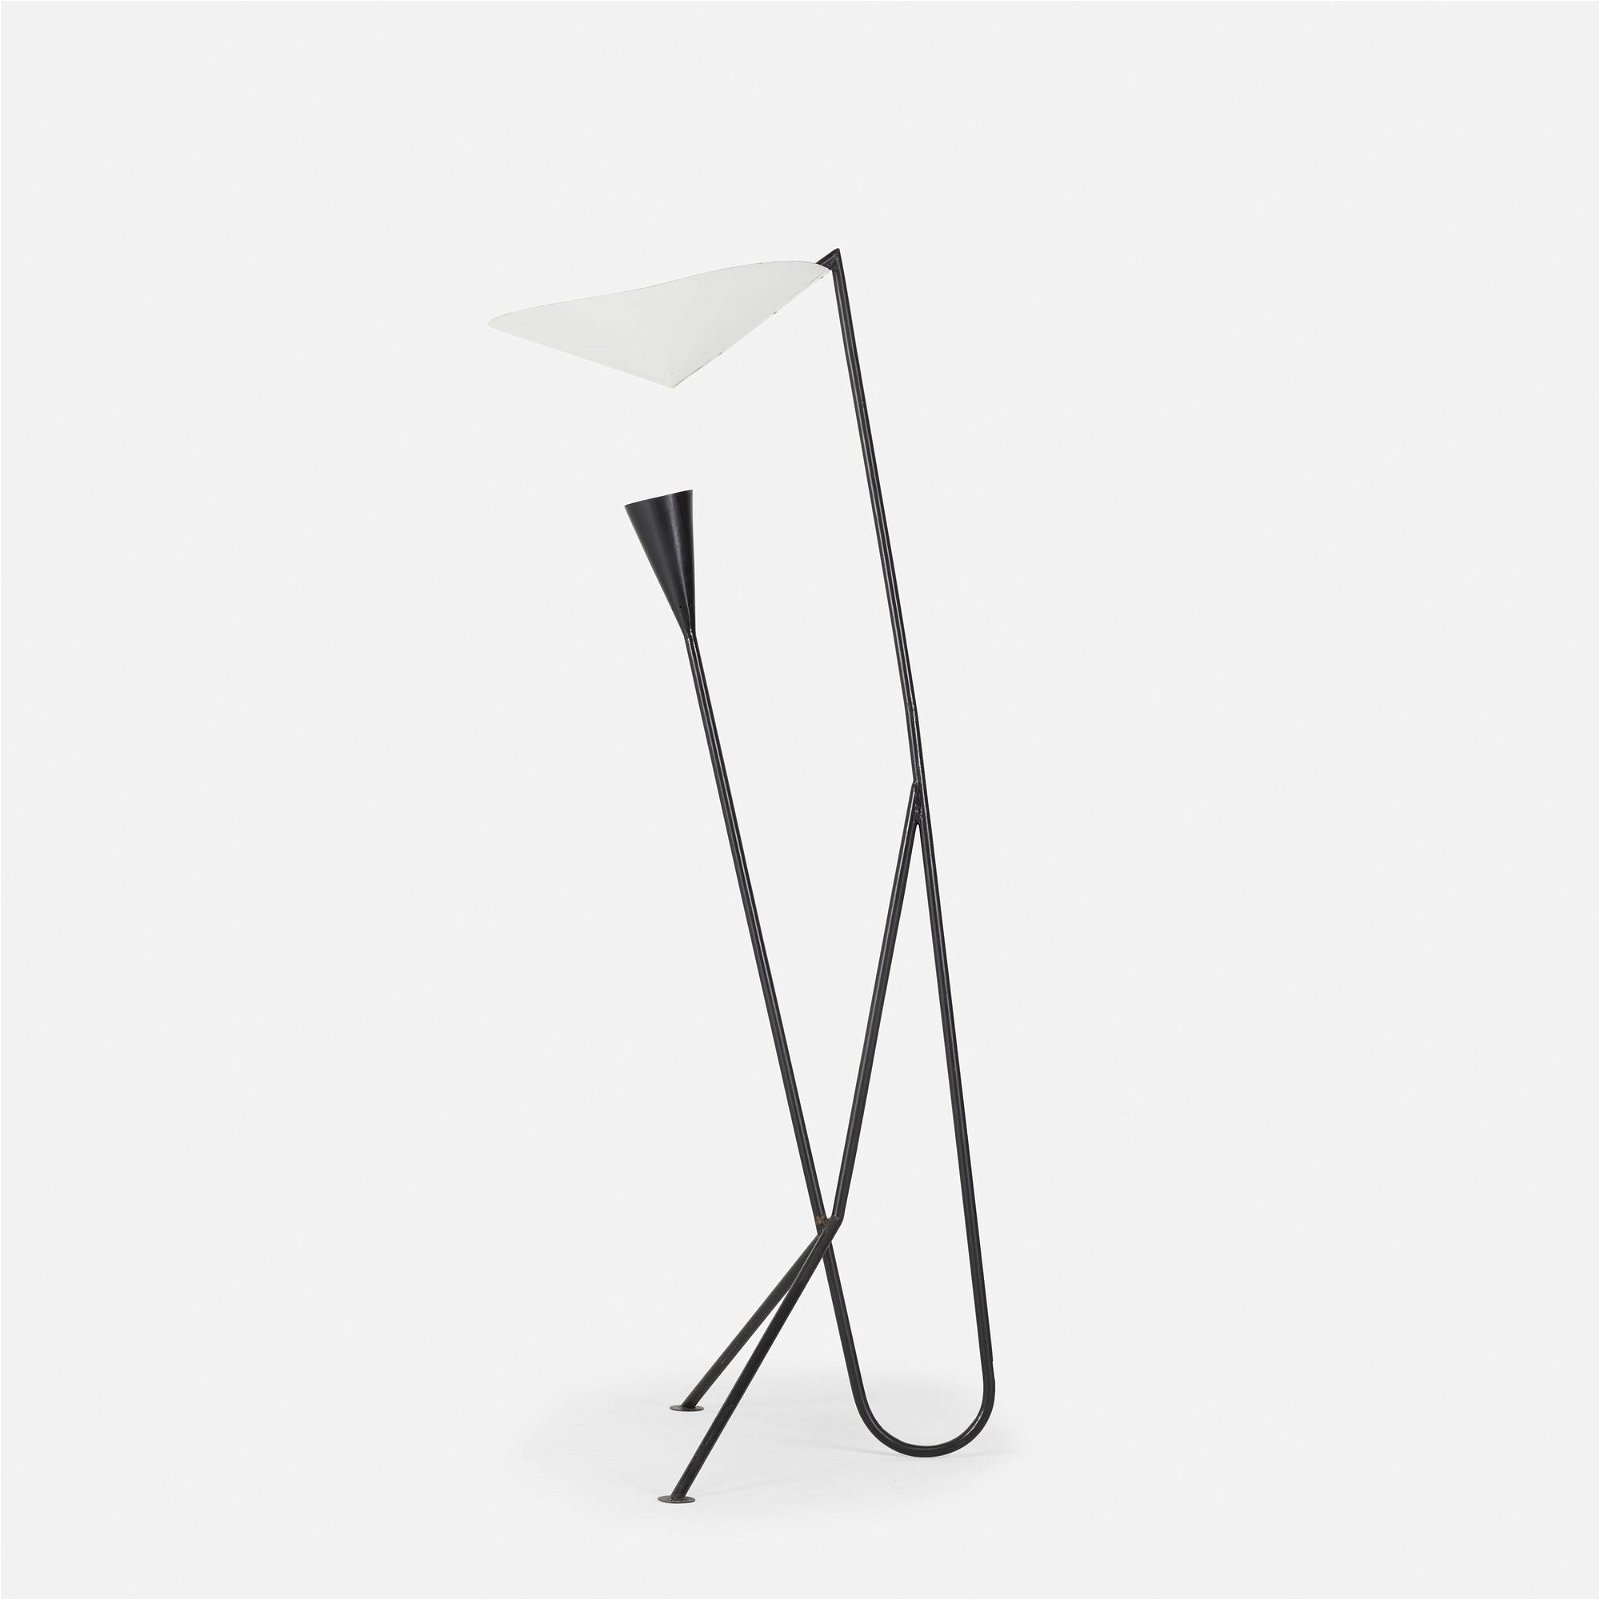 French, floor lamp